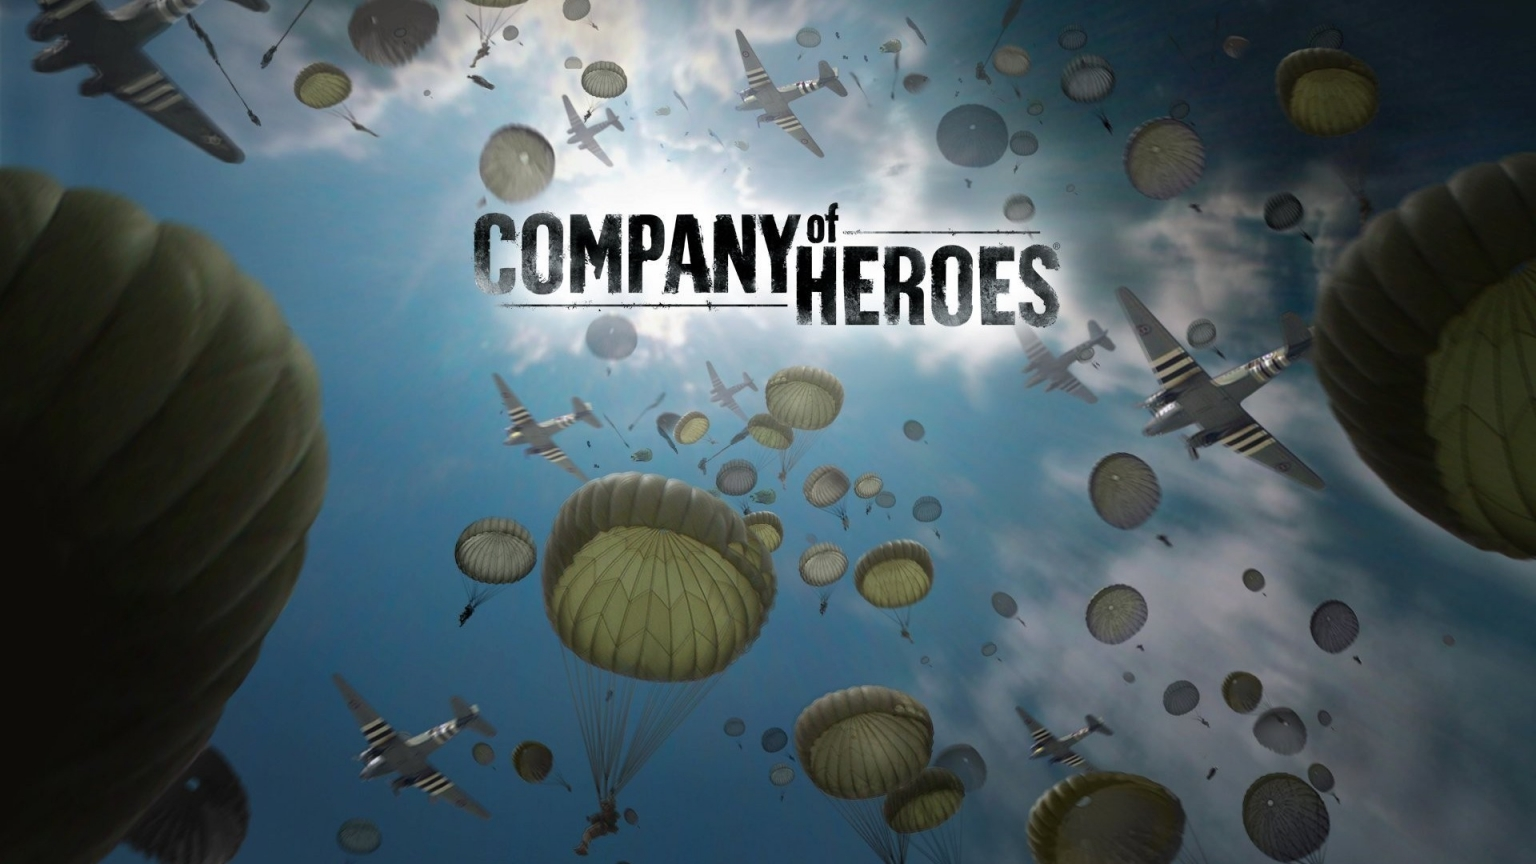 Company of Heroes for 1536 x 864 HDTV resolution